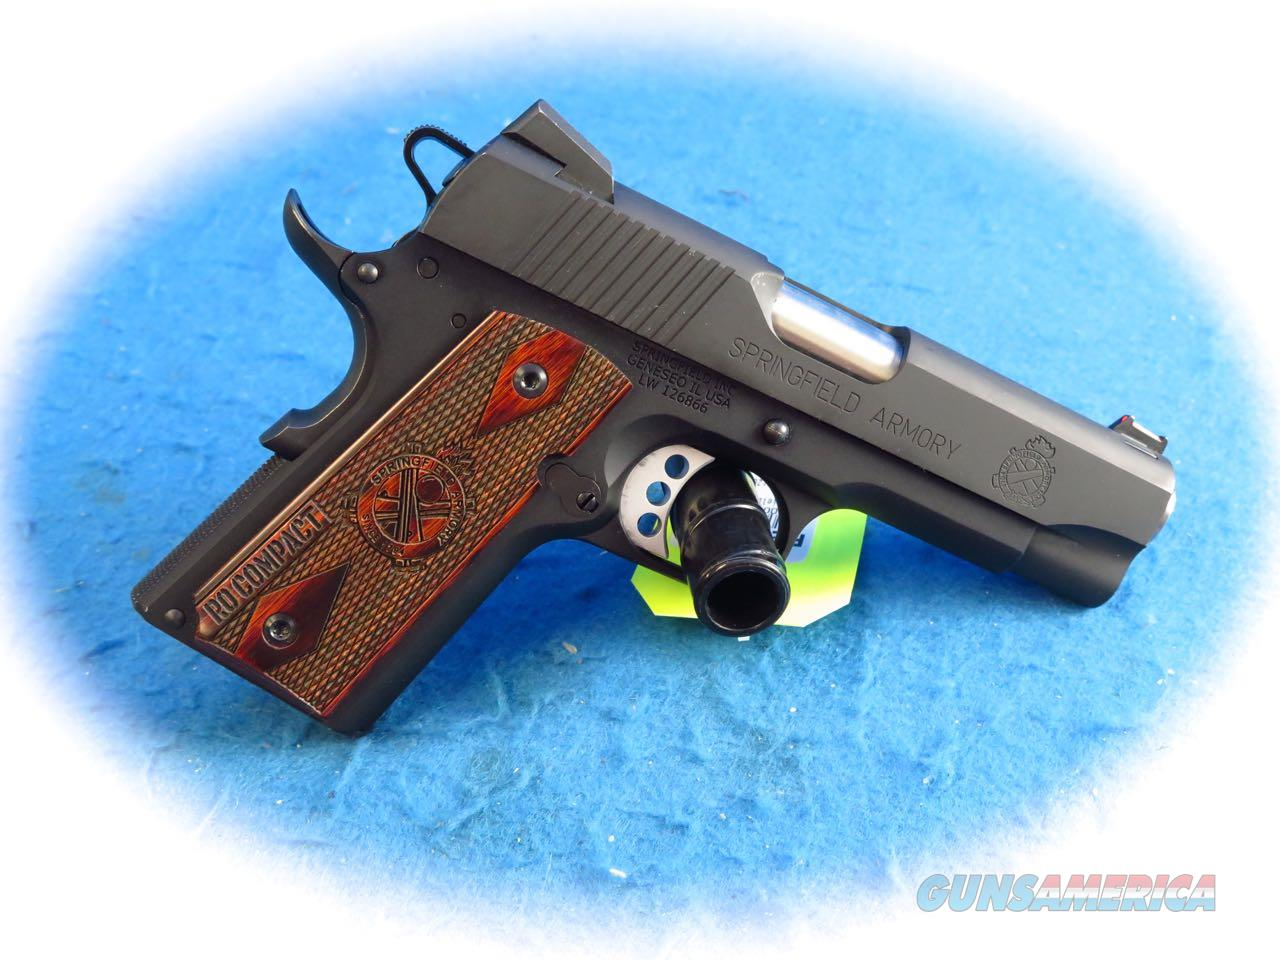 Springfield Armory 1911 Range Officer Compact .45 ACP Pistol **Used**  Guns > Pistols > Springfield Armory Pistols > 1911 Type